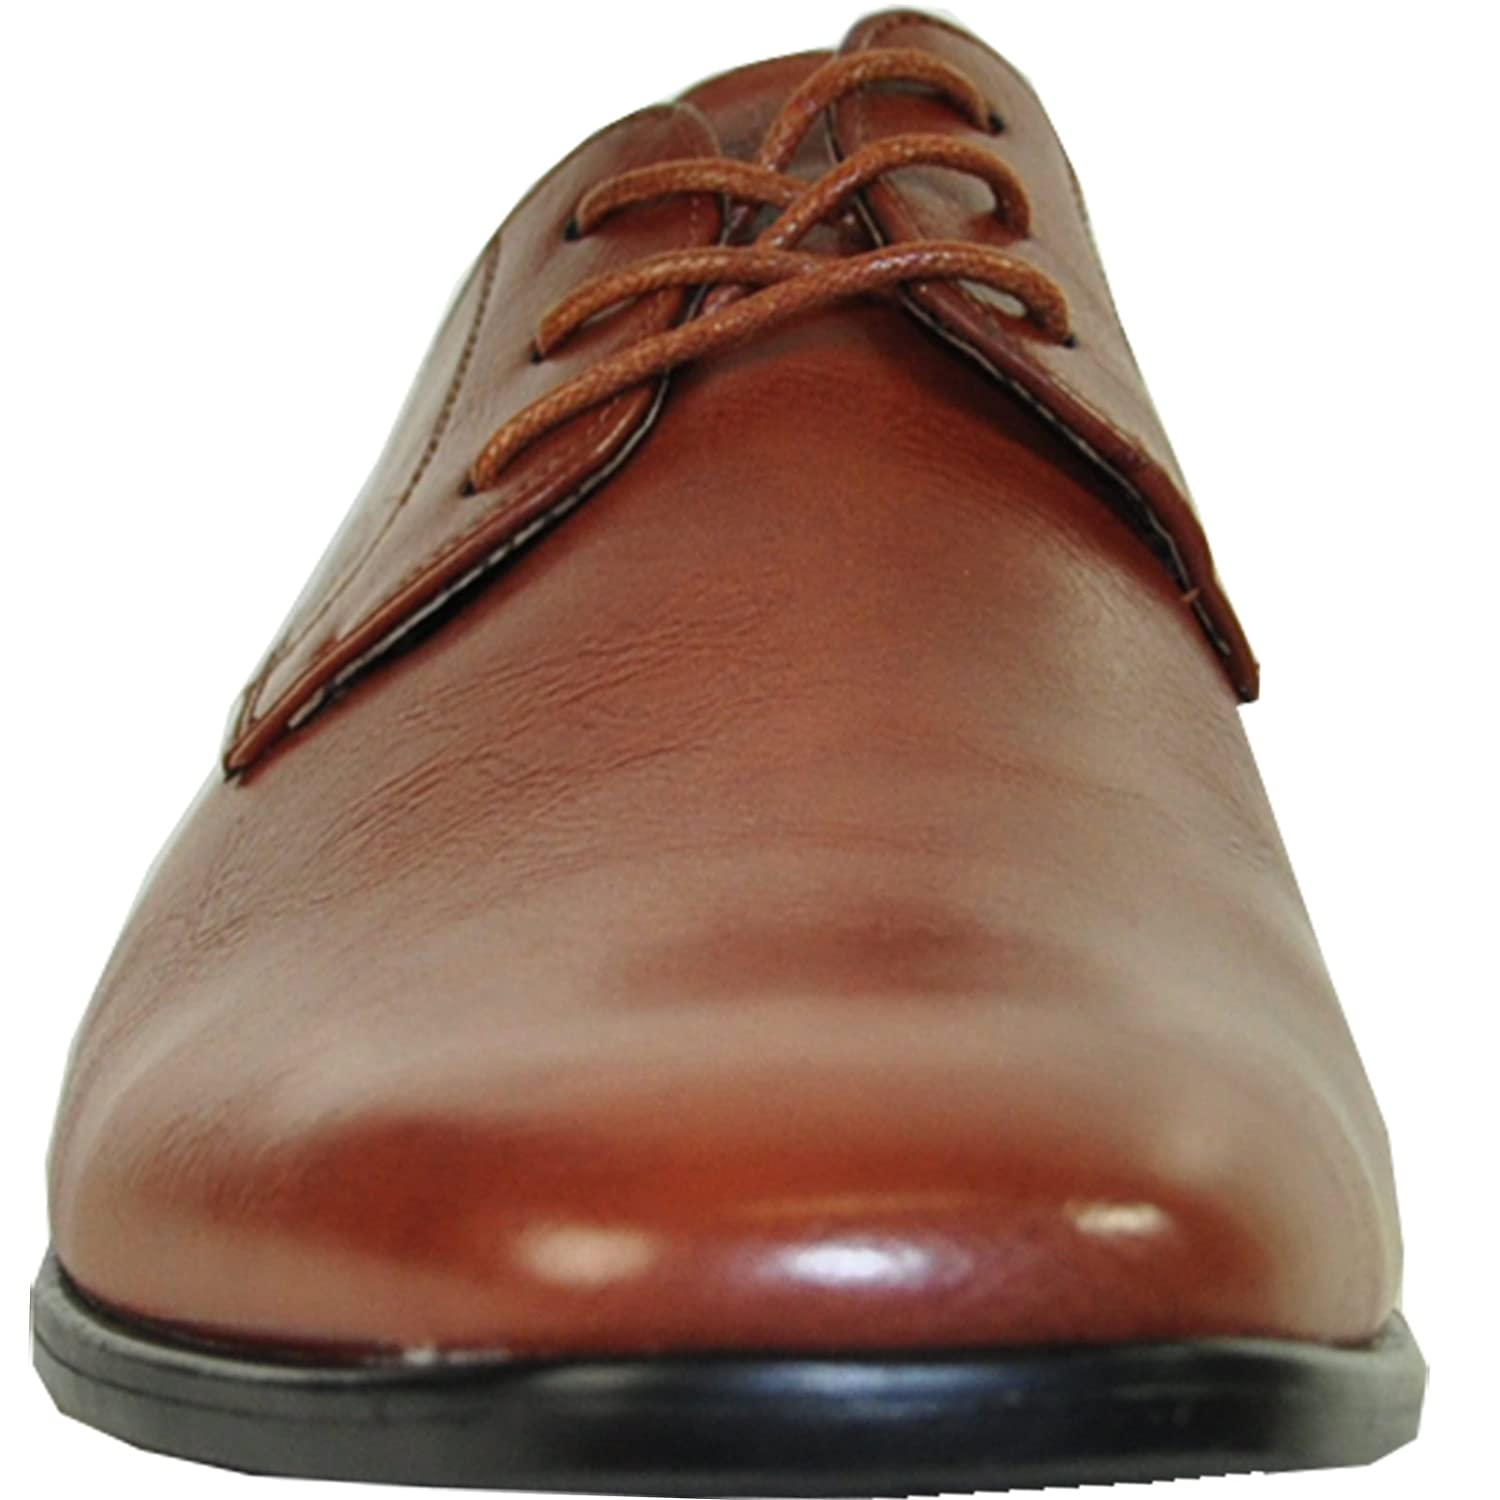 BRAVO Men Dress Shoe Lining KING-1 Classic Oxford with Leather Lining Shoe B01C4NAXXE Western a93d47